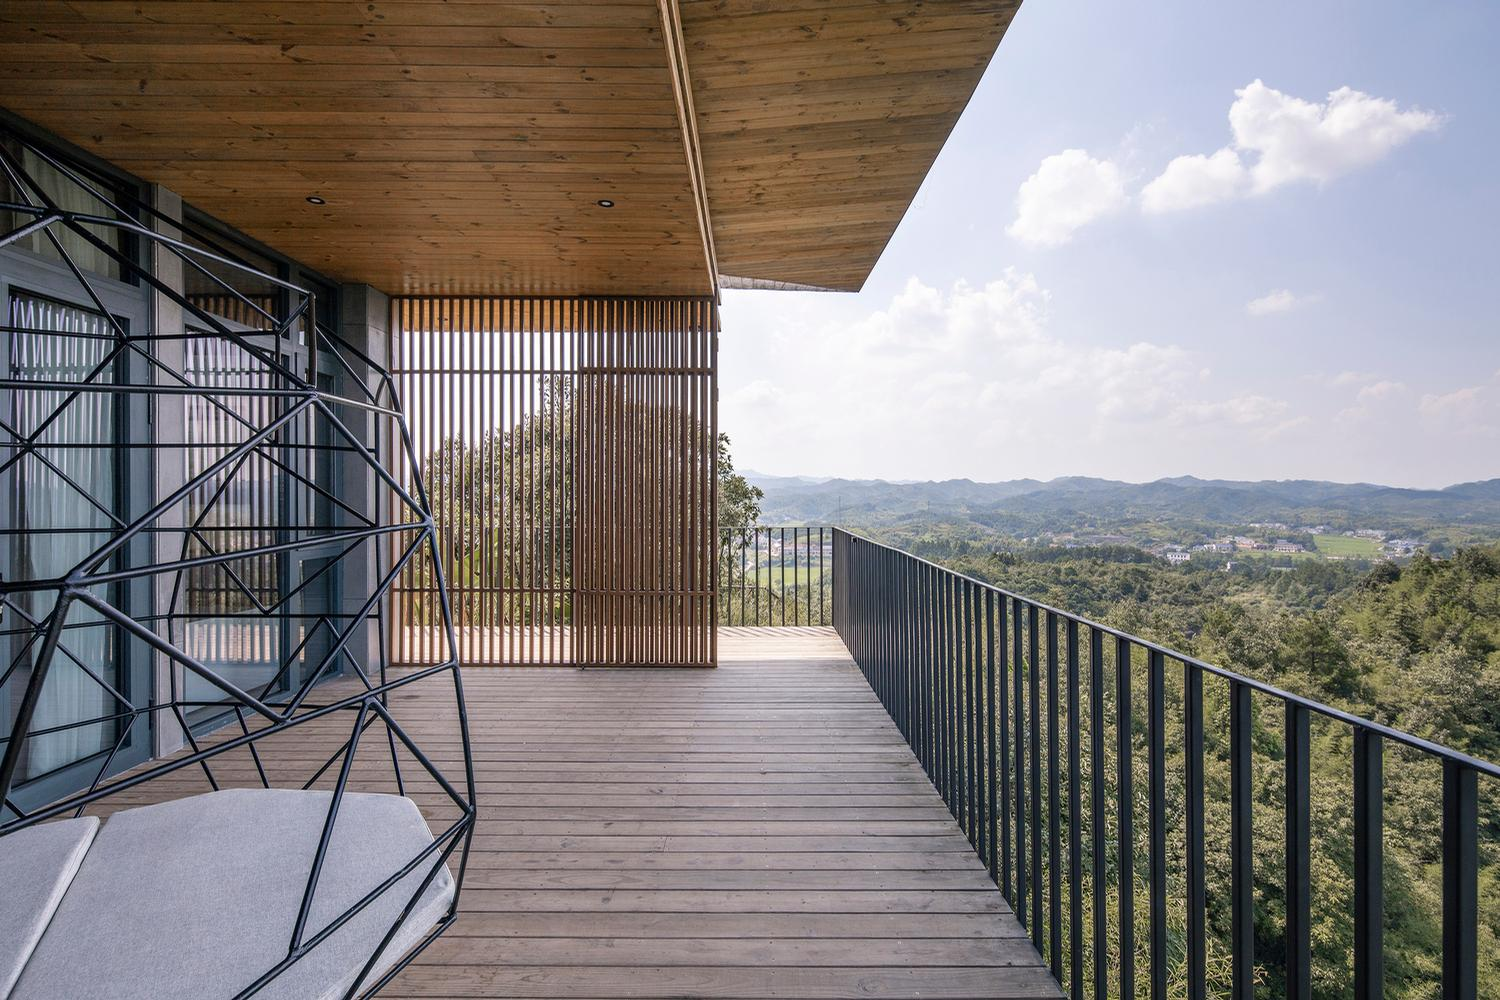 Guests at the Dinghui have views across the mountainous bamboo forest surroundings / Jin Weiqi